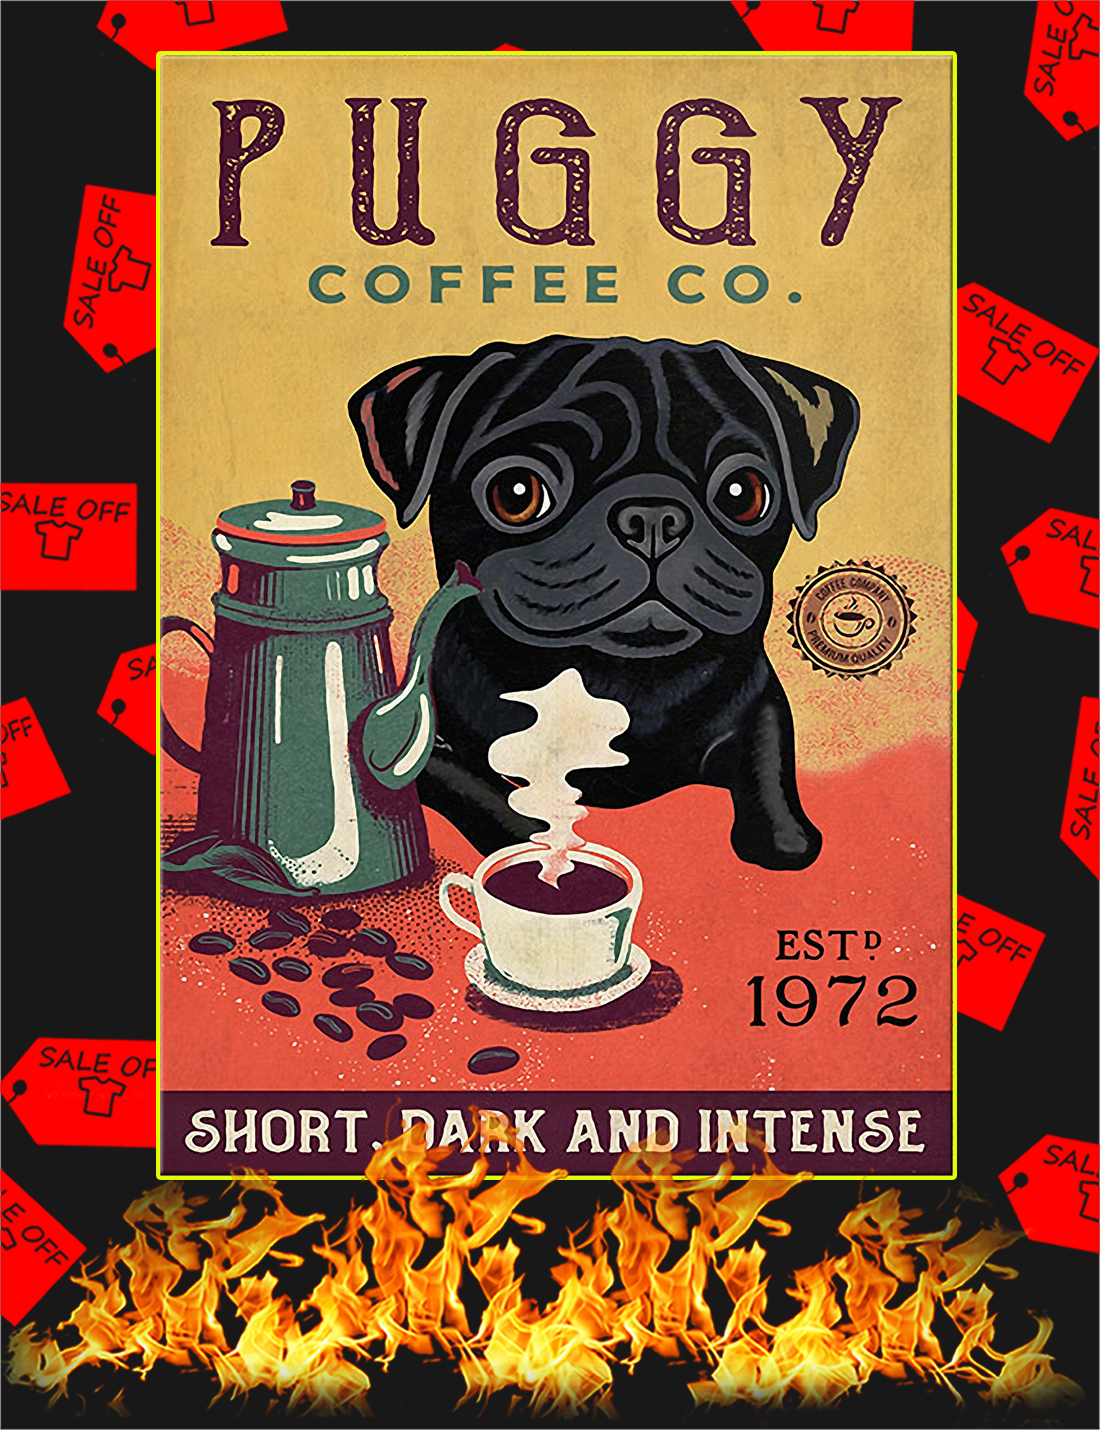 Puggy coffee co short dark and intense poster